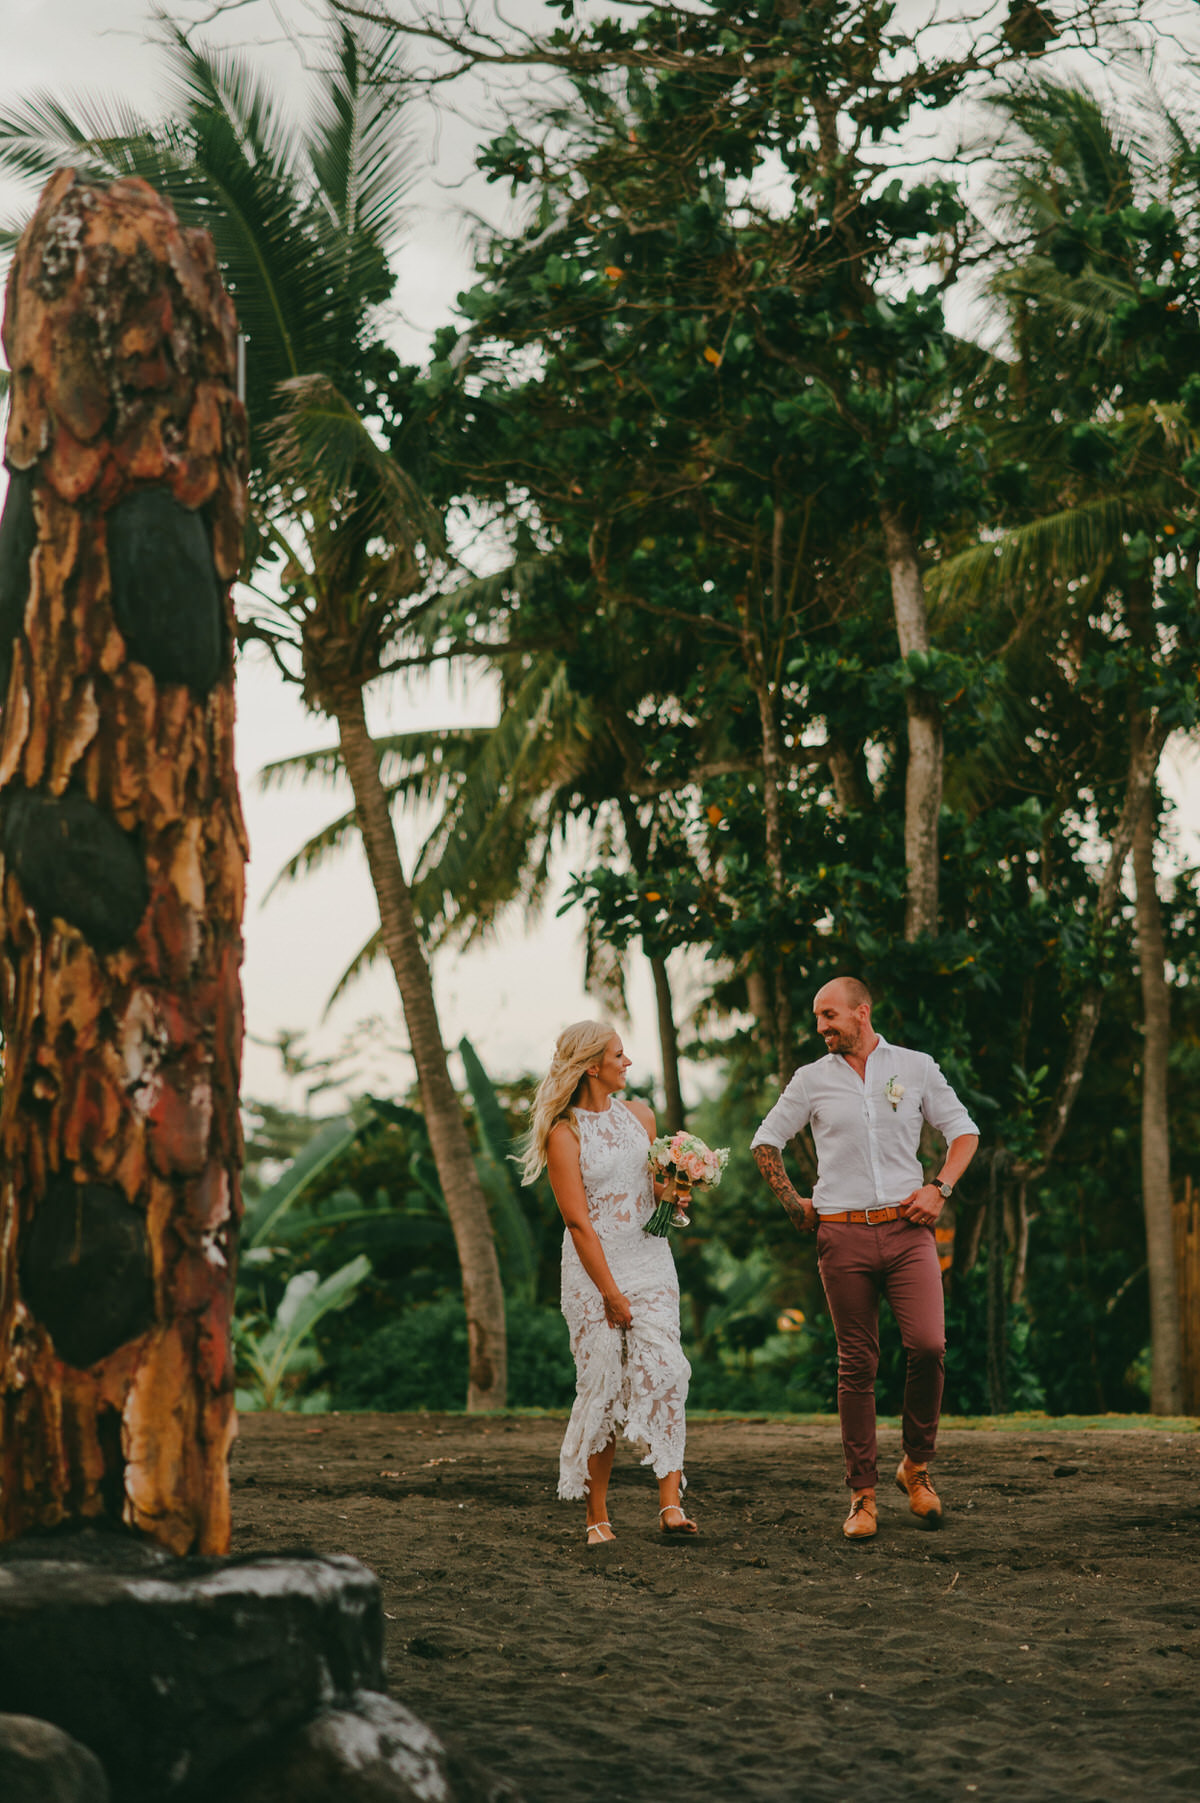 bali wedding destination-wedding in bali - bali photographer - komune beach club - profesional bali wedding photographer - diktatphotography - Jess & Craig - 84